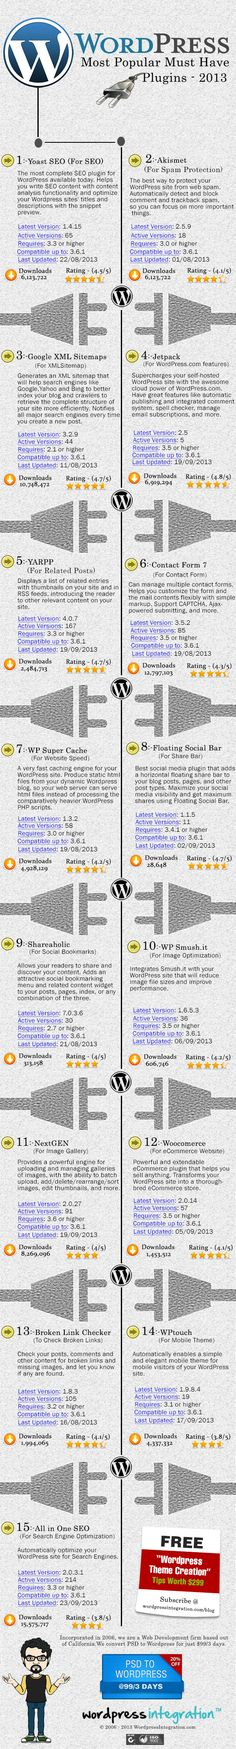 What Are 15 Popular Must-Have Plugins On WordPress 2013? #infographic